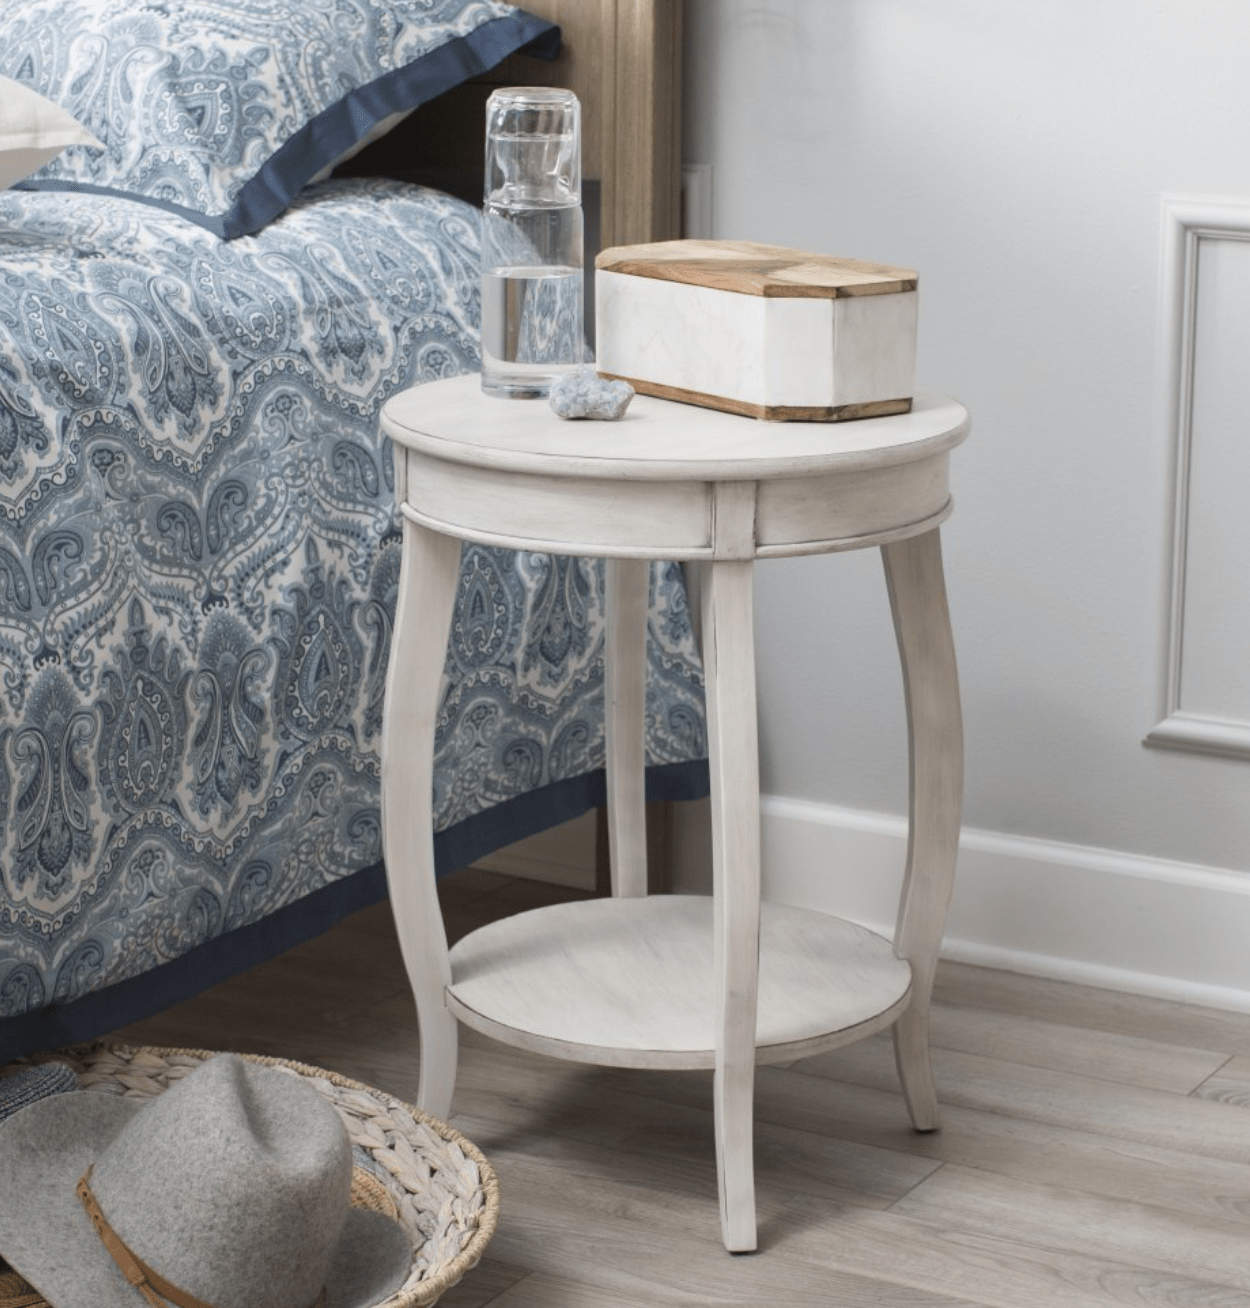 lovely small accent table for white round bedroom min low compact with lower and upper shelf kids lighting side modern cocktail high pub tables living room frosted glass end funky